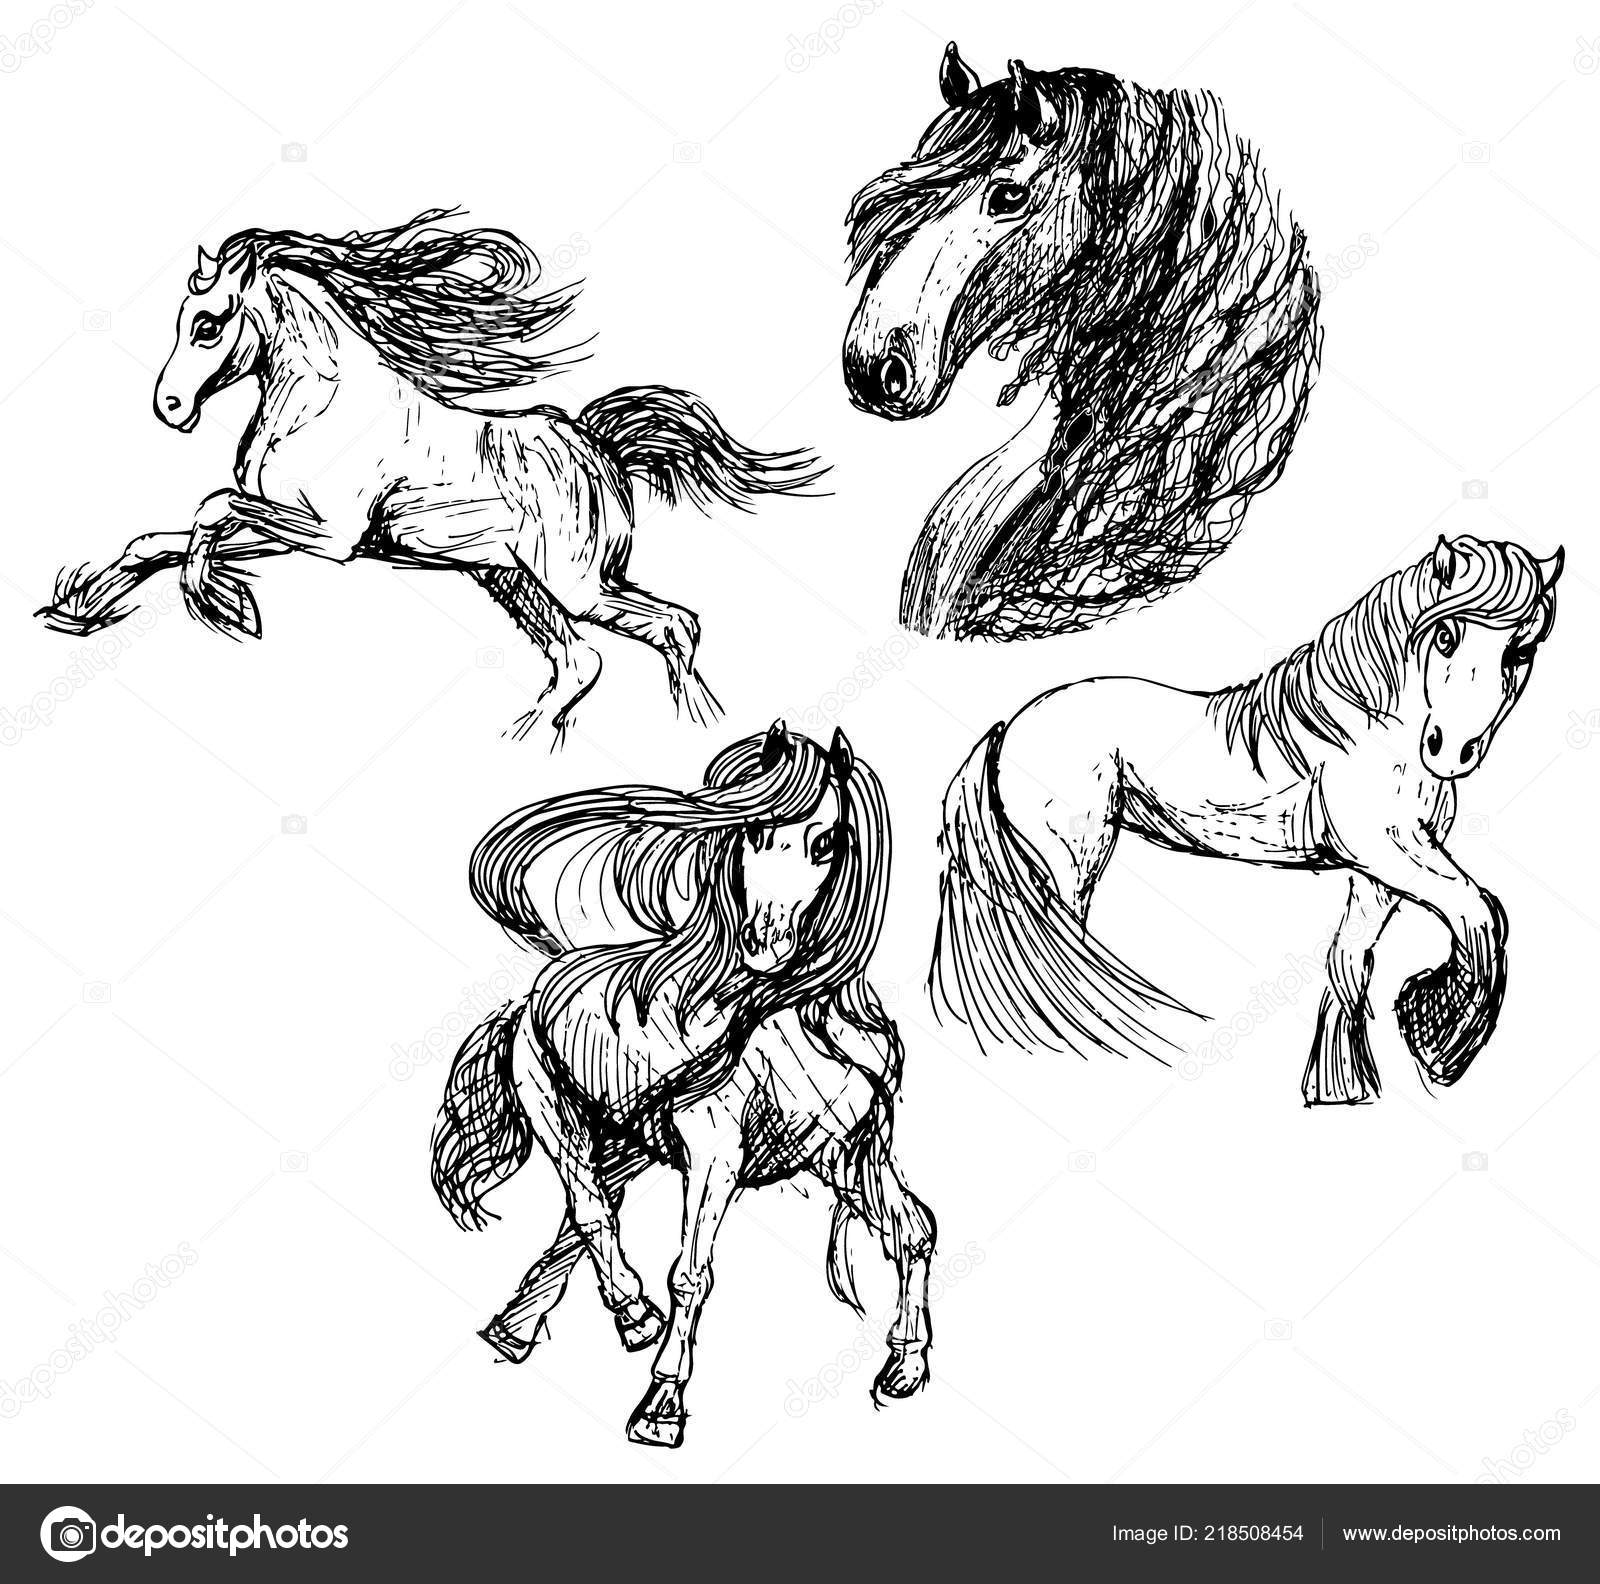 Magic Horses Illustration Isolated White Background Stock Vector C Mainfu 218508454